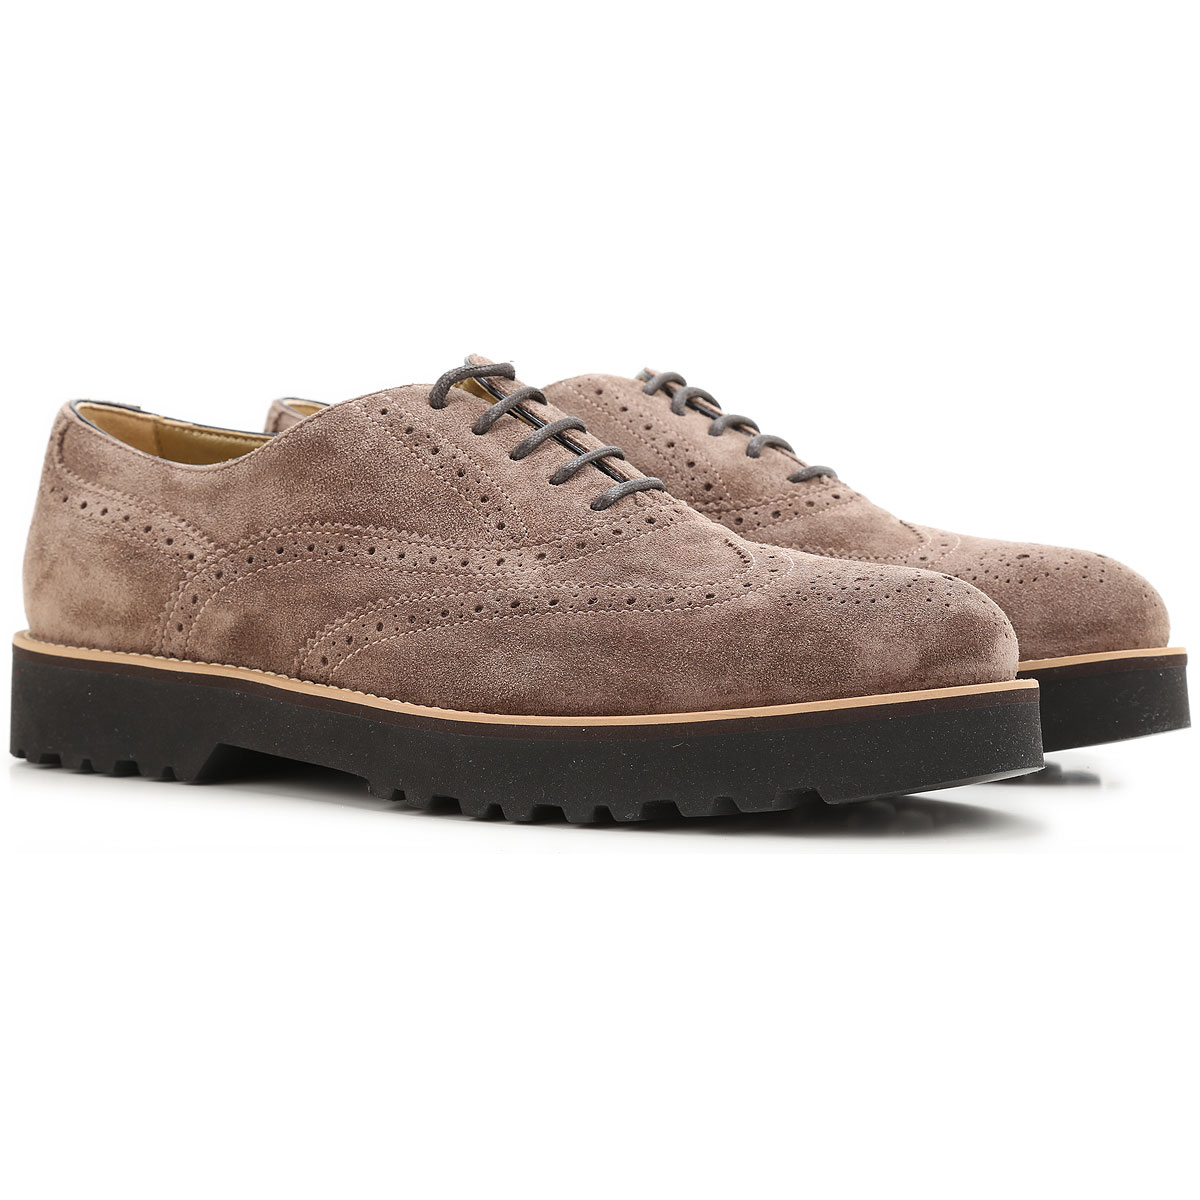 Image of Hogan Brogues Oxford Shoes On Sale in Outlet, Swamp, suede, 2017, 6.5 9